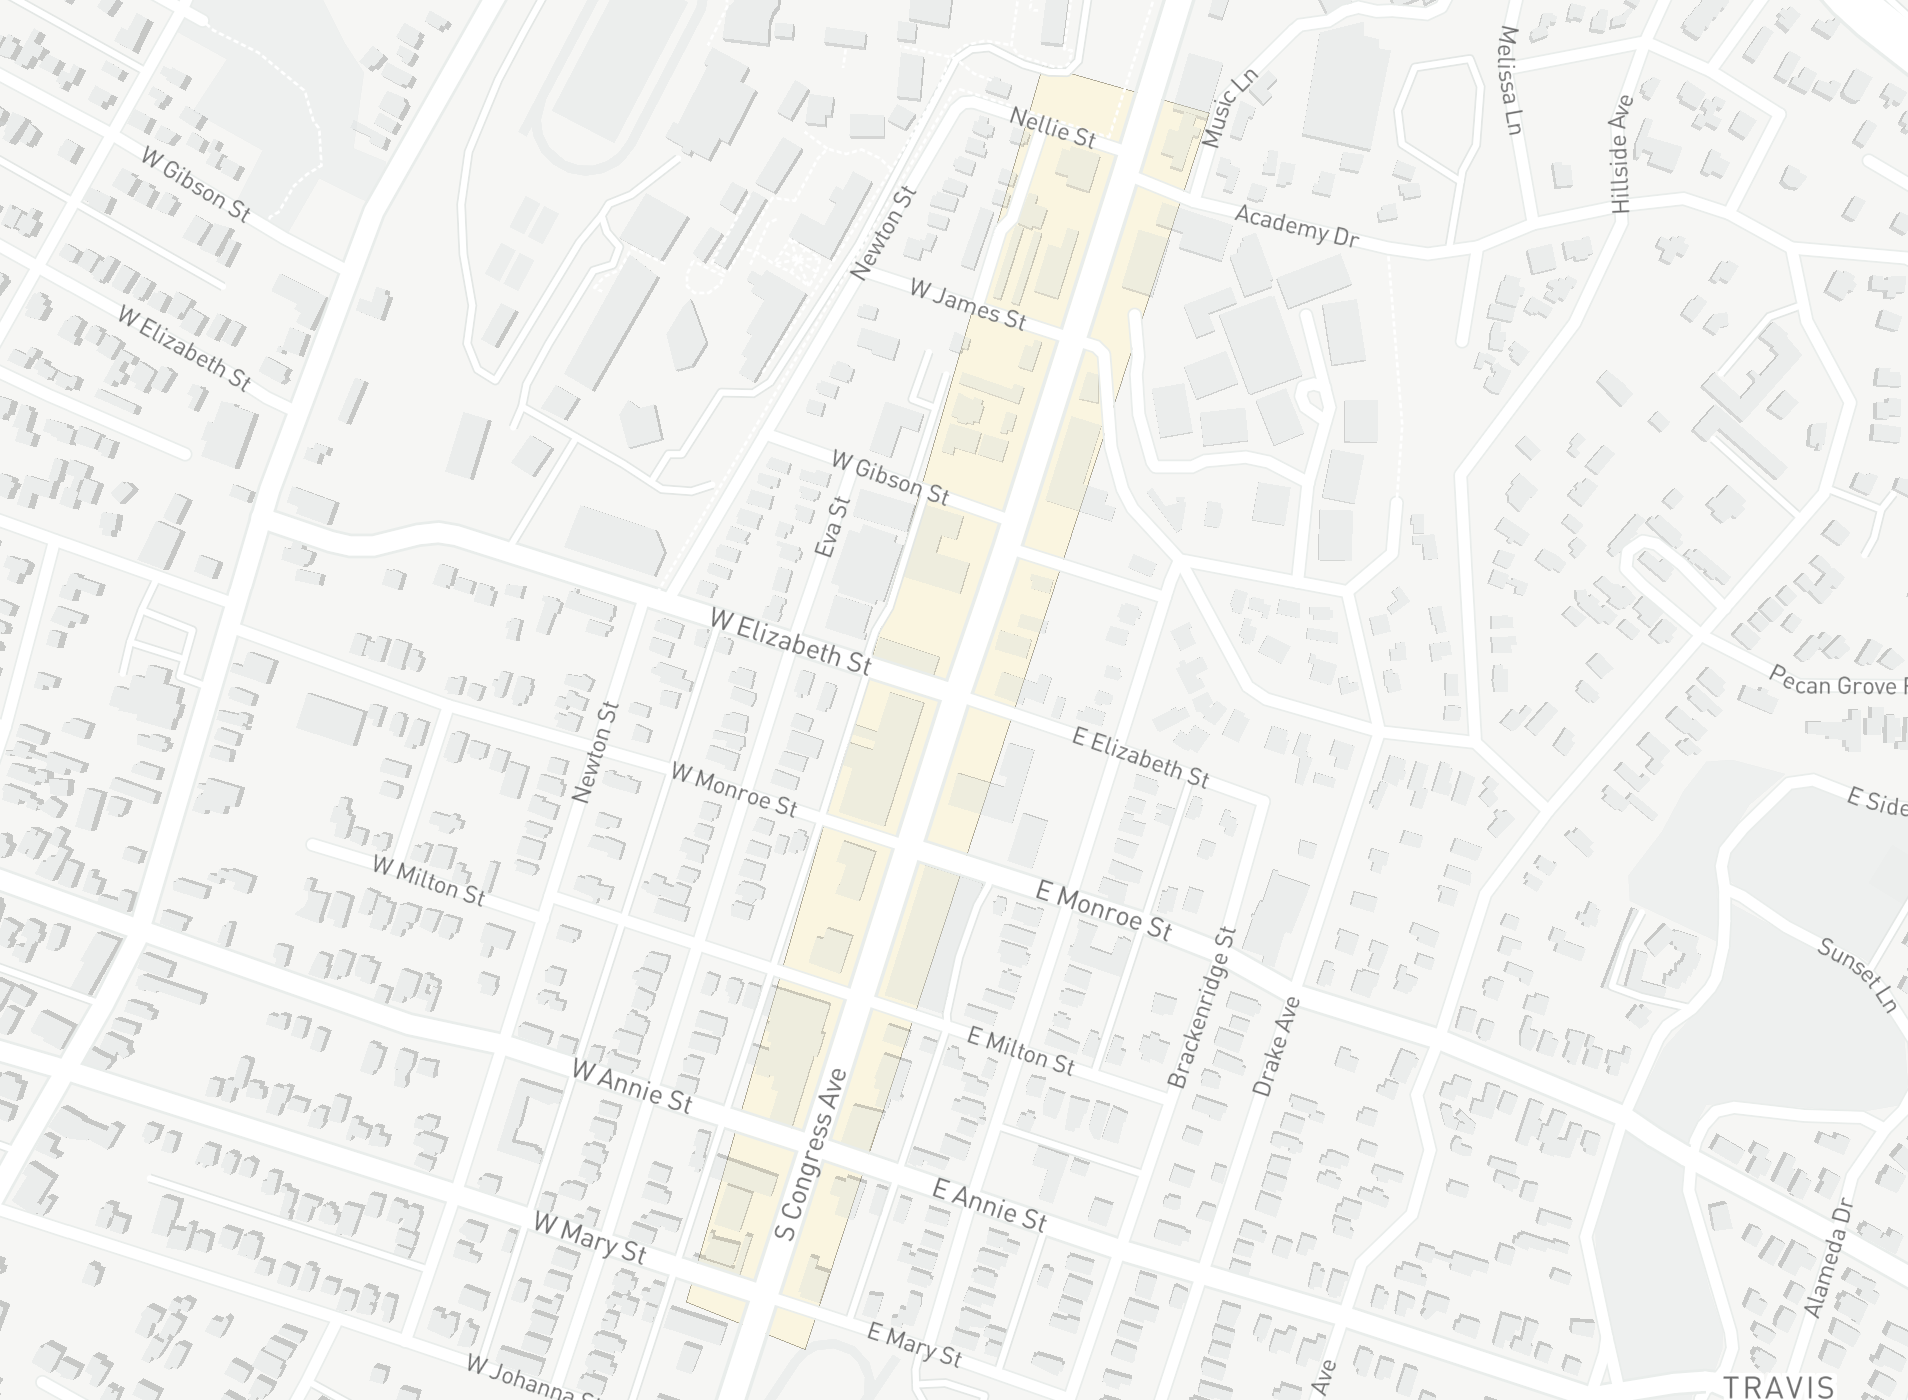 Area of interest 2: South Congress